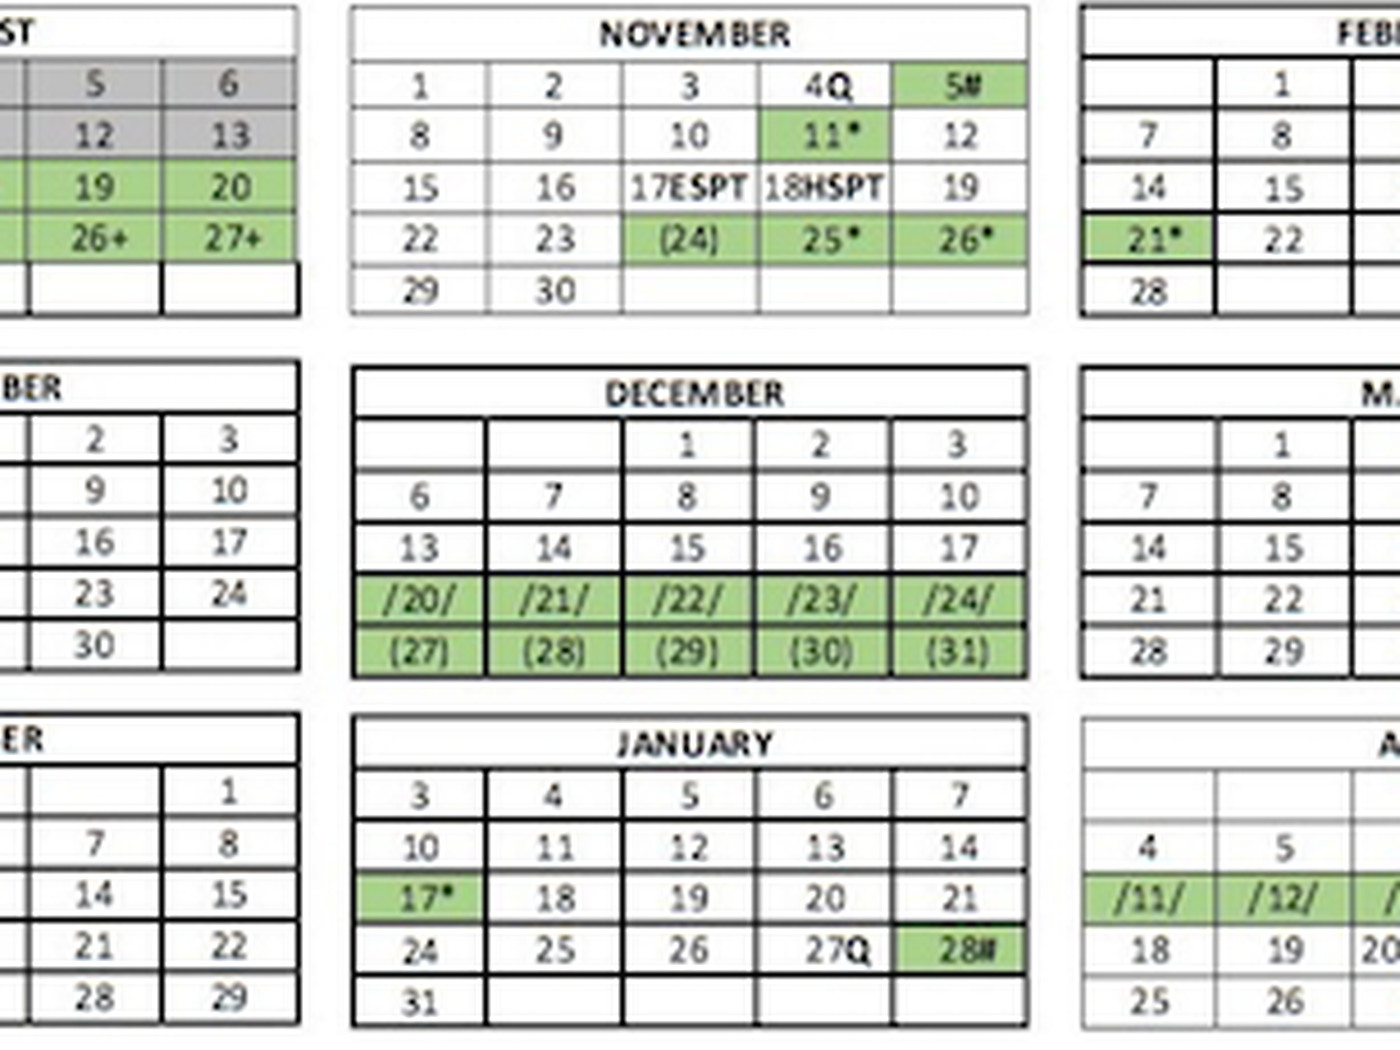 Cps Calendar 2022 23.Cps Calendar 2021 22 Here S The Full Schedule For Chicago Public Schools Chicago Sun Times